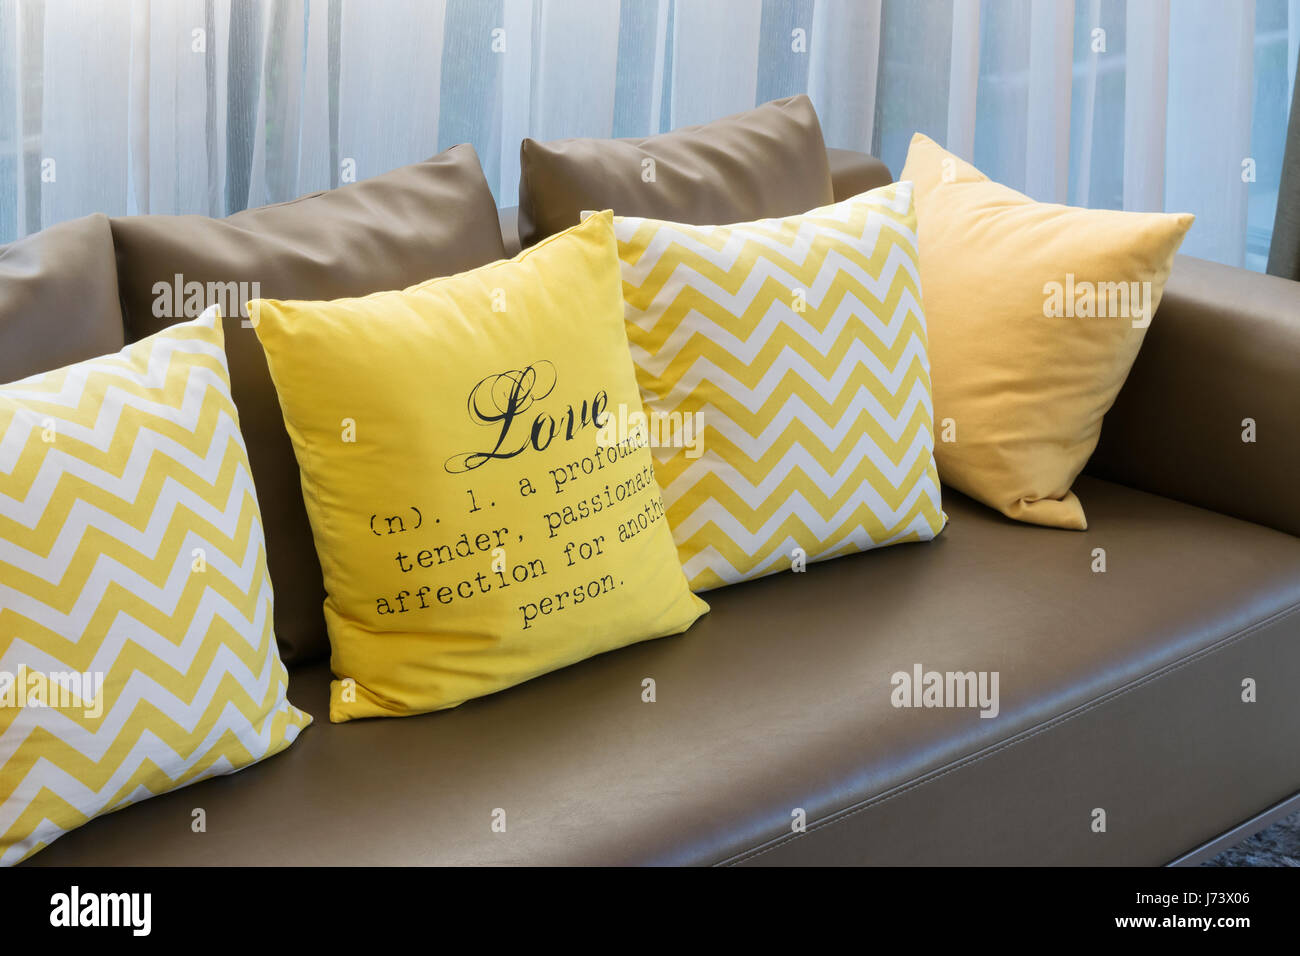 Modern Living Room Design With Brown Sofa And Yellow Pillows Stock Photo Alamy